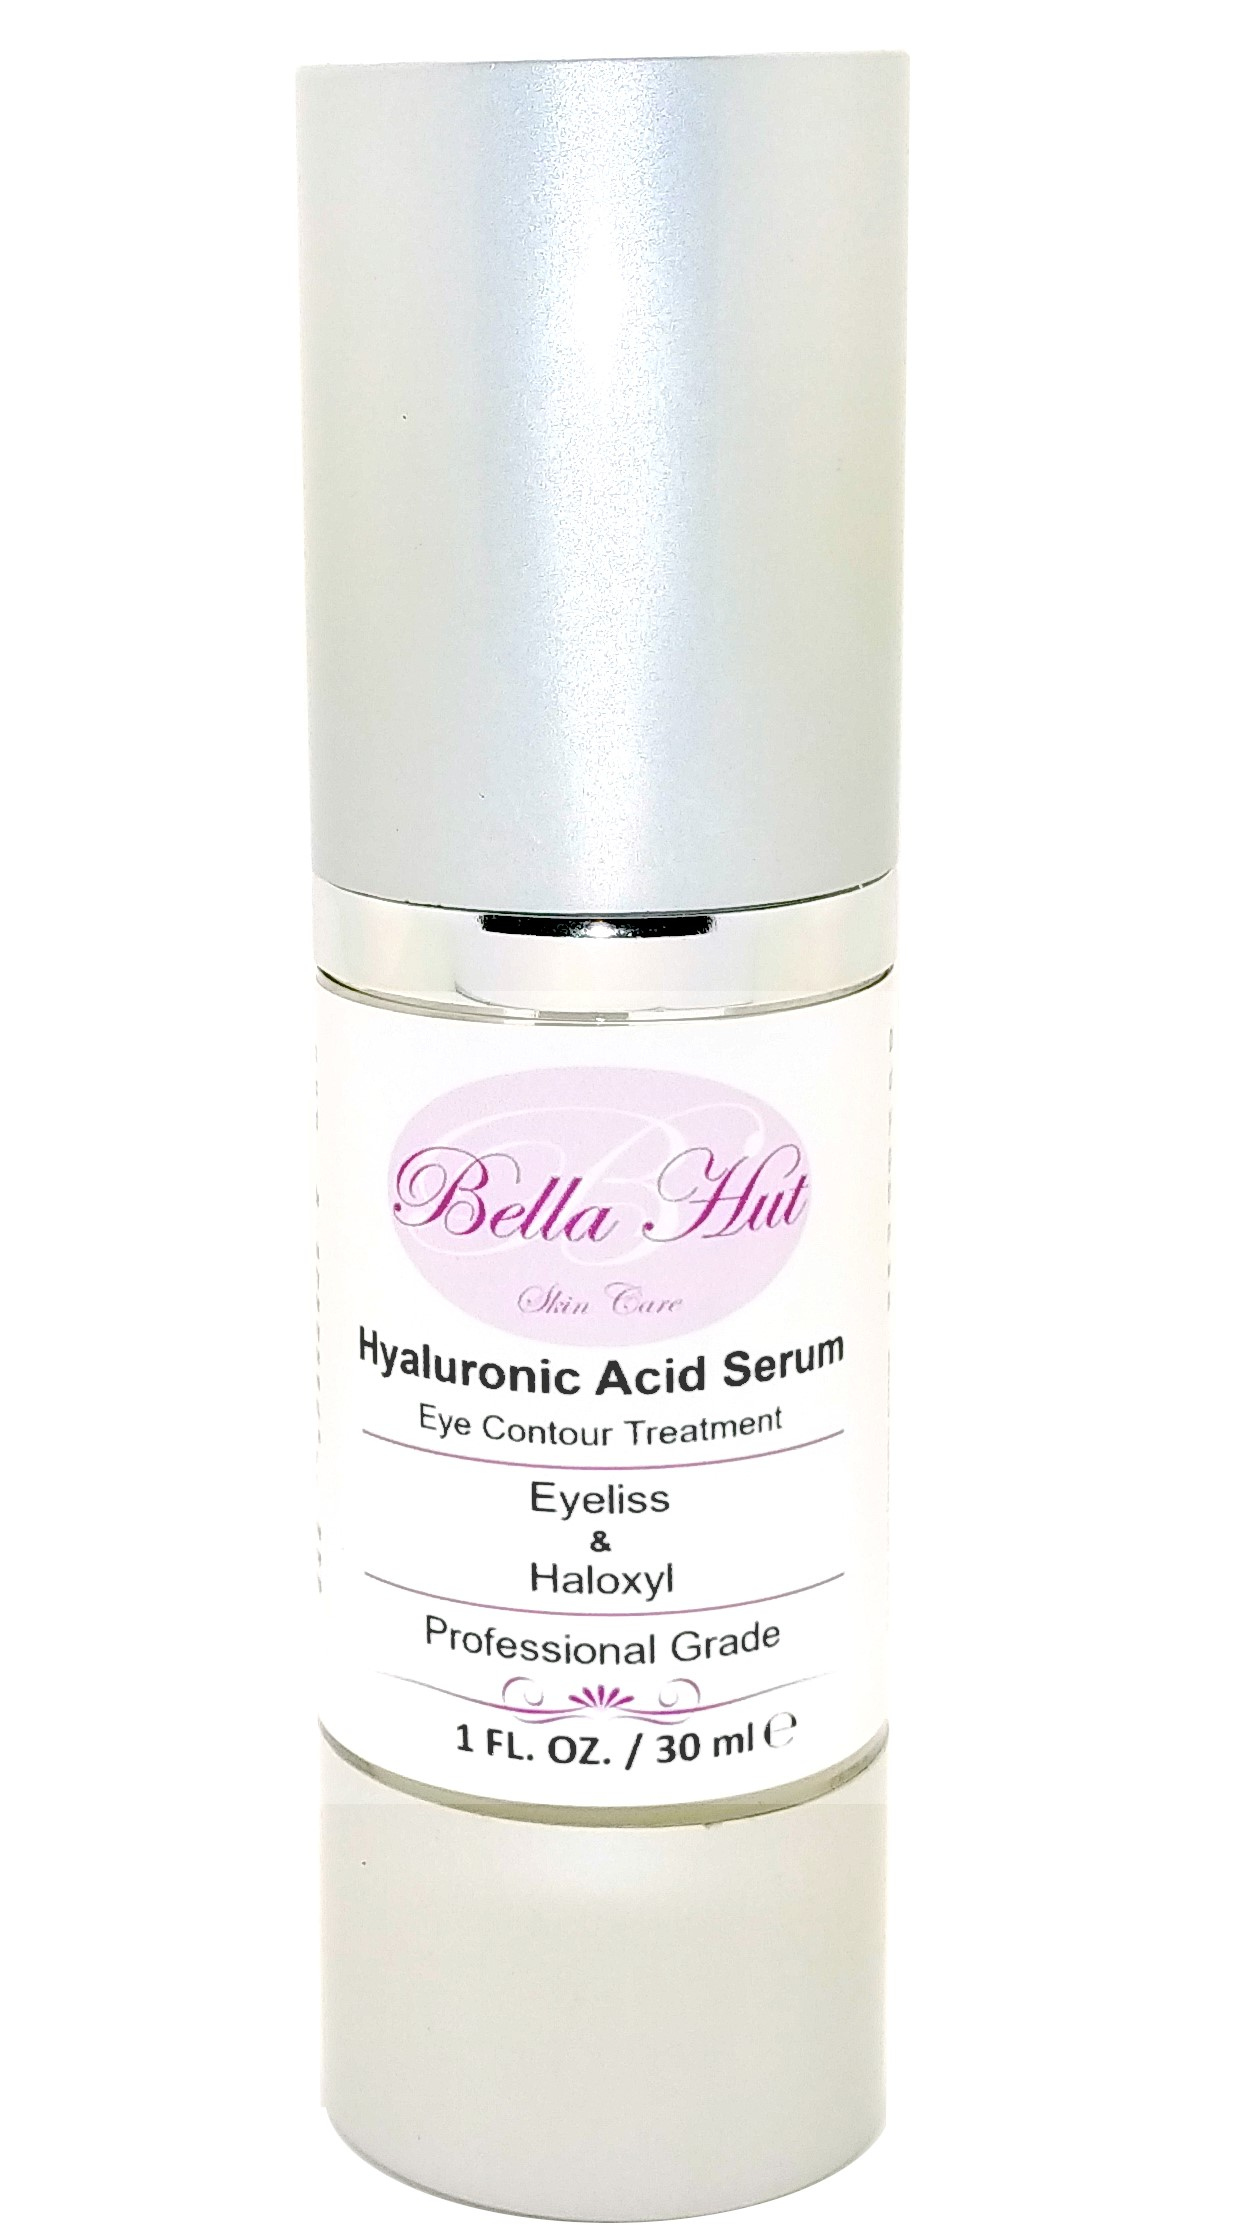 100% Hyaluronic Acid Serum with Eyeliss and Haloxyl